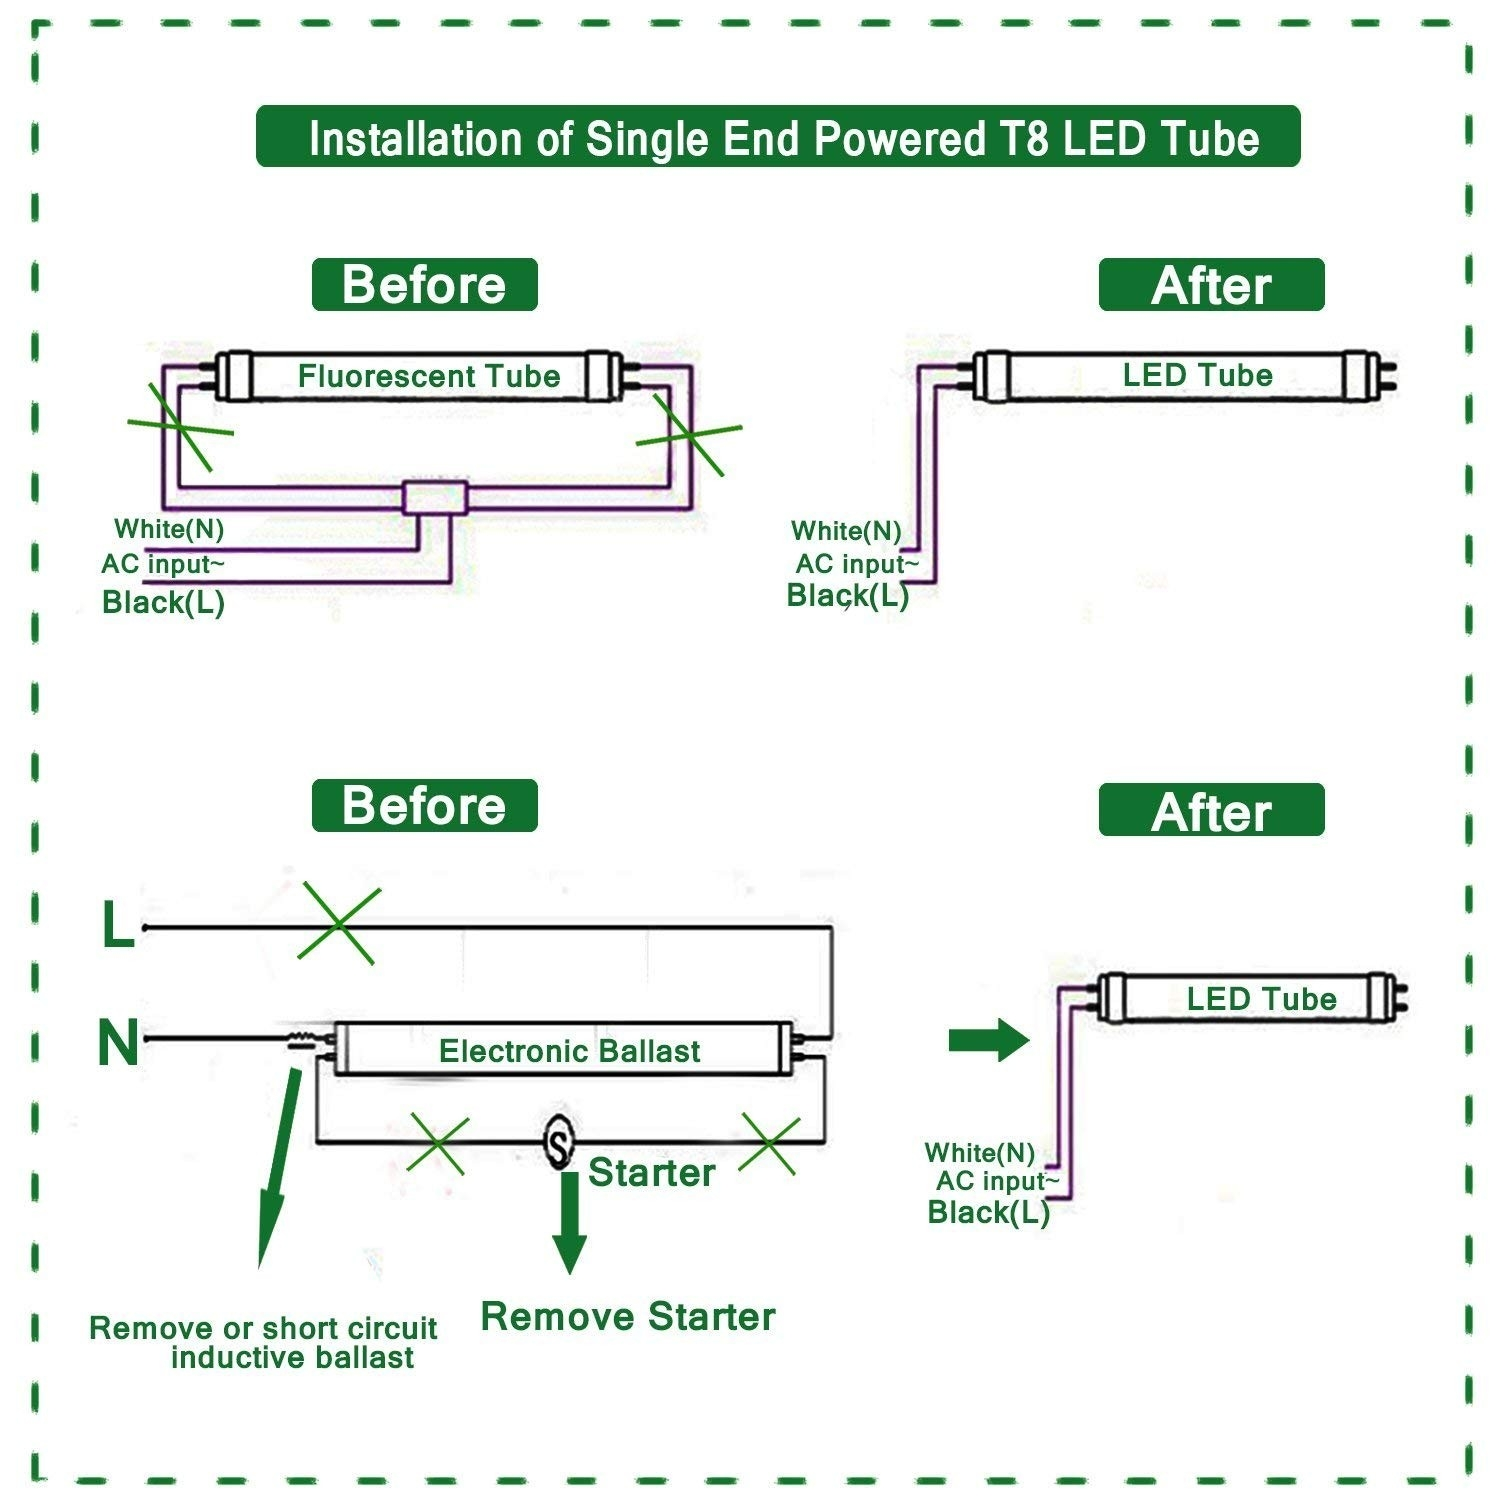 T8 Led Tube Light Wiring Diagram - Wiring Diagram for Led Tubes New Wiring Diagram Led Tube Philips Refrence T8 Led Tube Wiring 7j